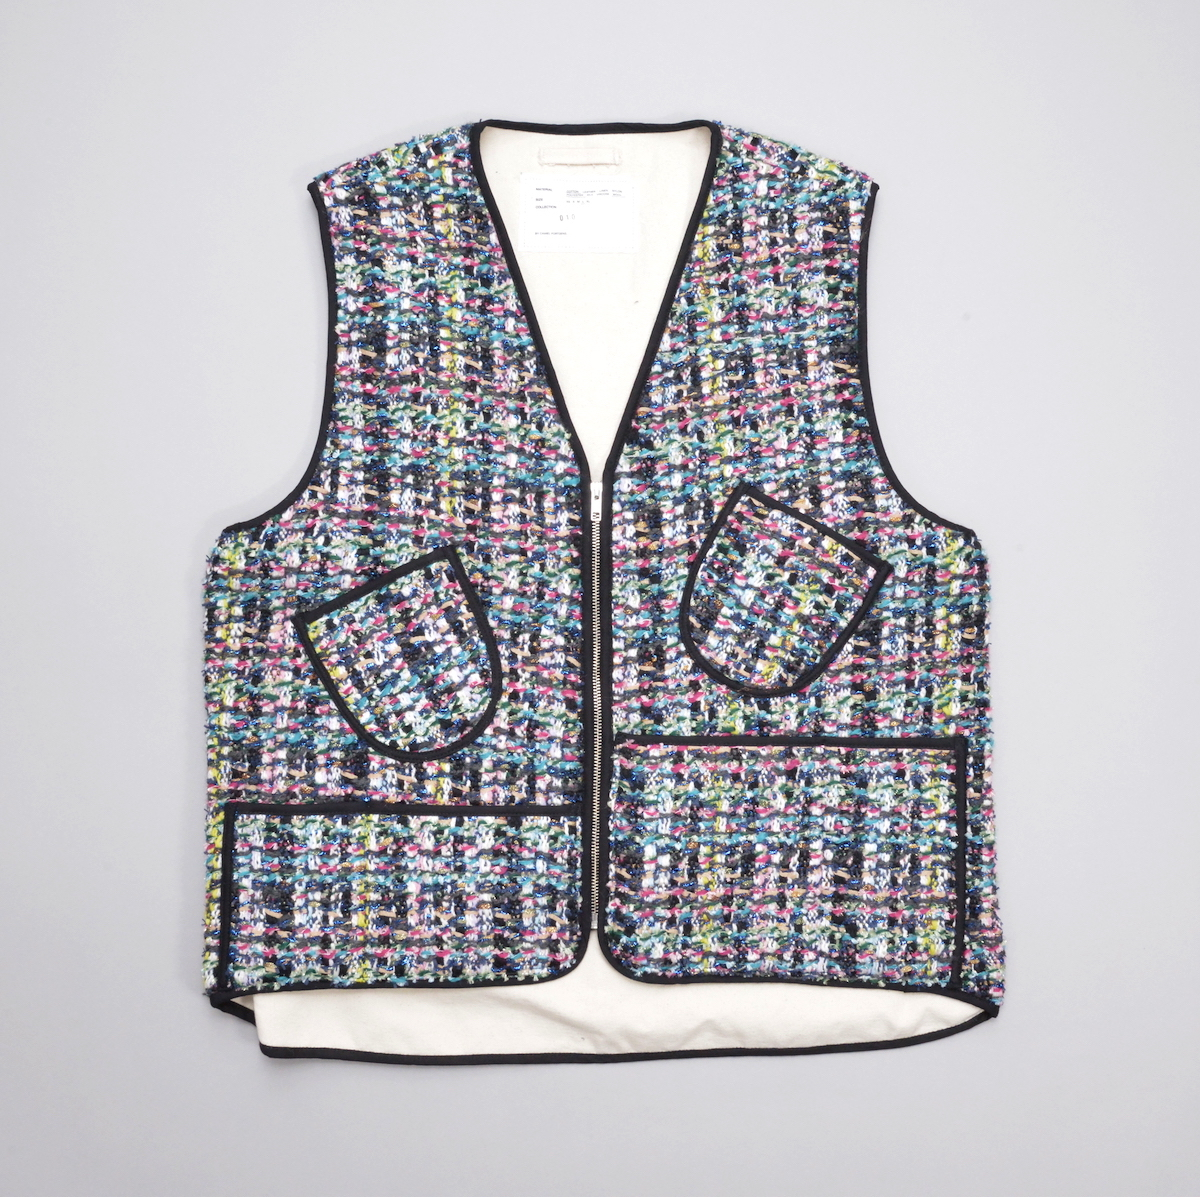 CAMIEL FORTGENS「 10.02.04 WORKER VEST CHANNEL TWEED 」